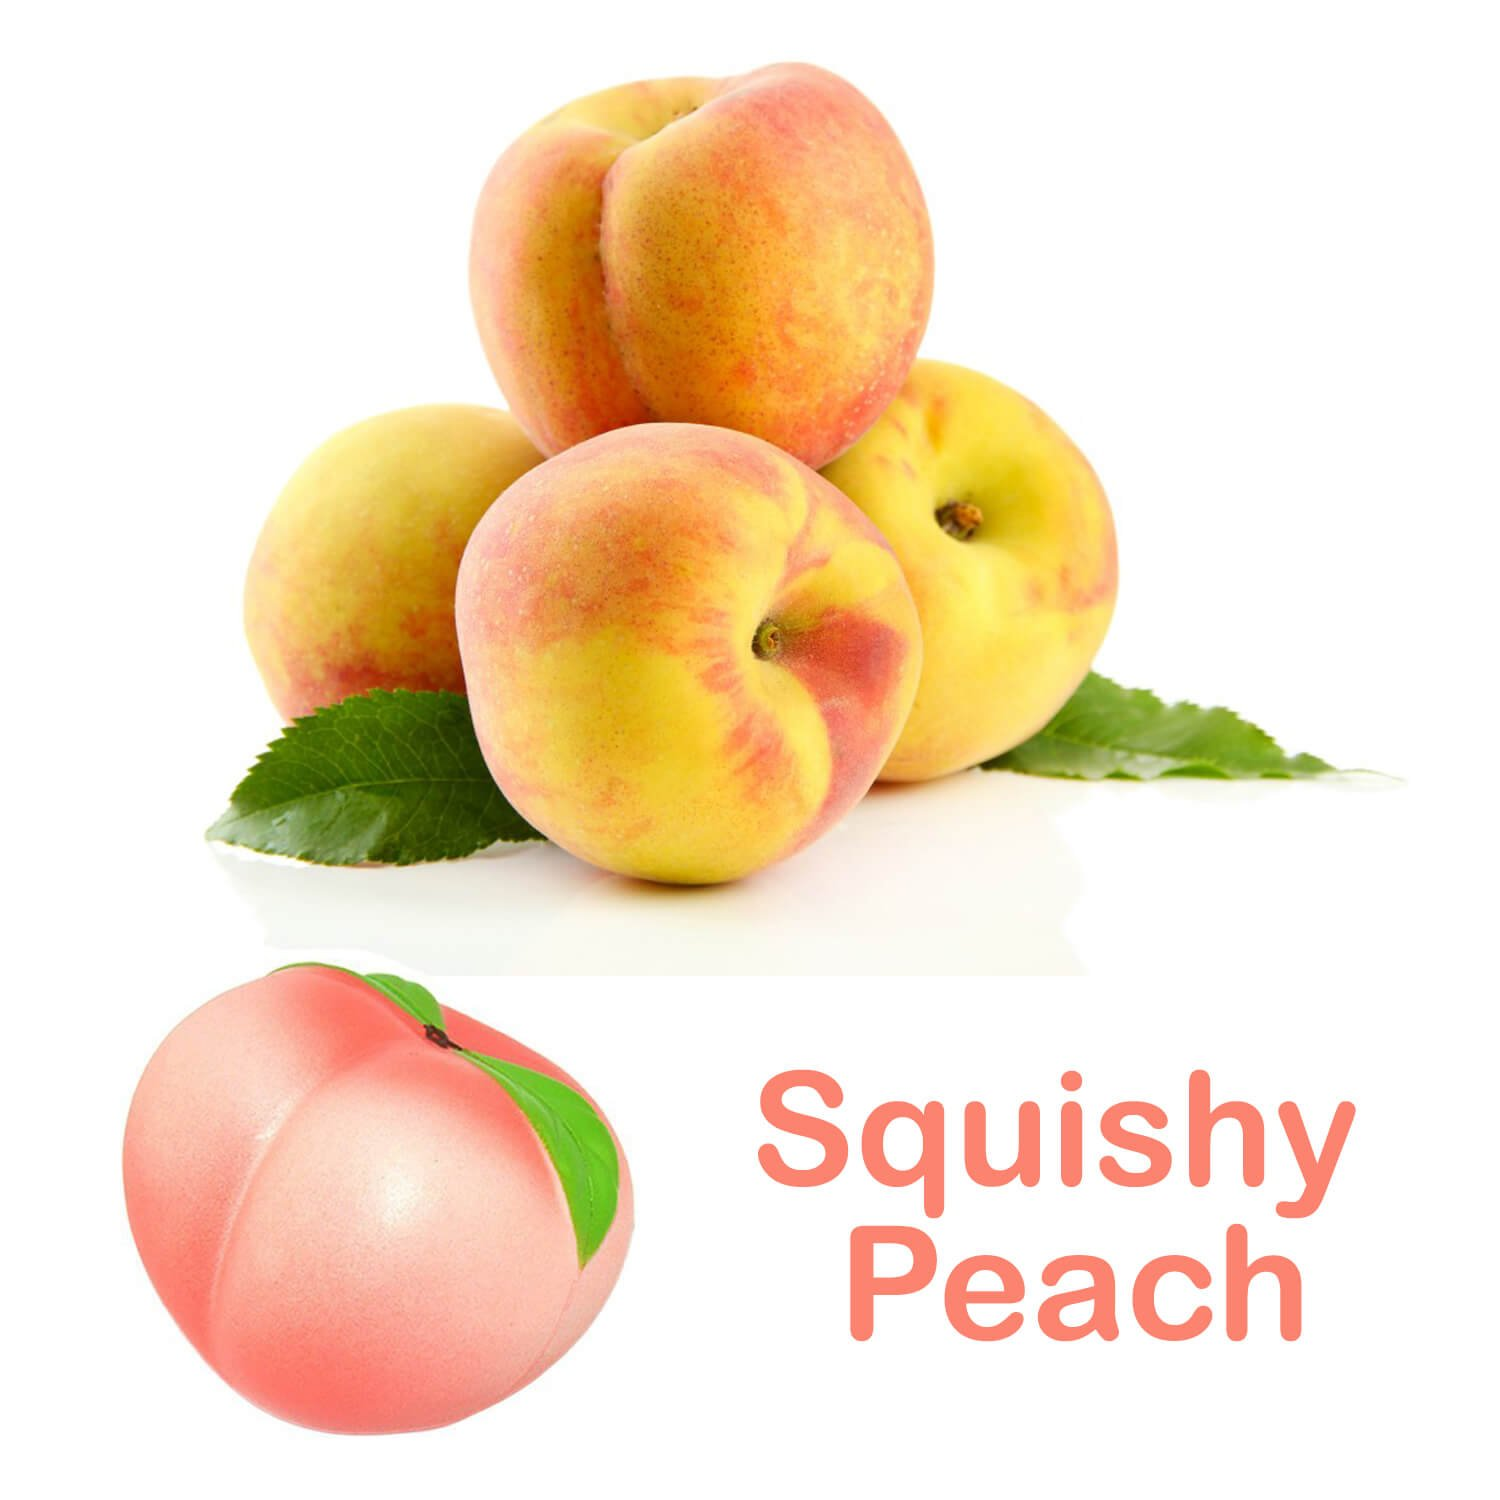 Squishies Slow Rising Jumbo Fruit - Prime 4 Pack Kawaii Squishy Toys Package Strawberry Peach Banana Apple Giant Scented Fruit Pack Cute Squishys Super Soft Stress Relief GIFT For Kids & Adults by Buylet Squishies (Image #8)